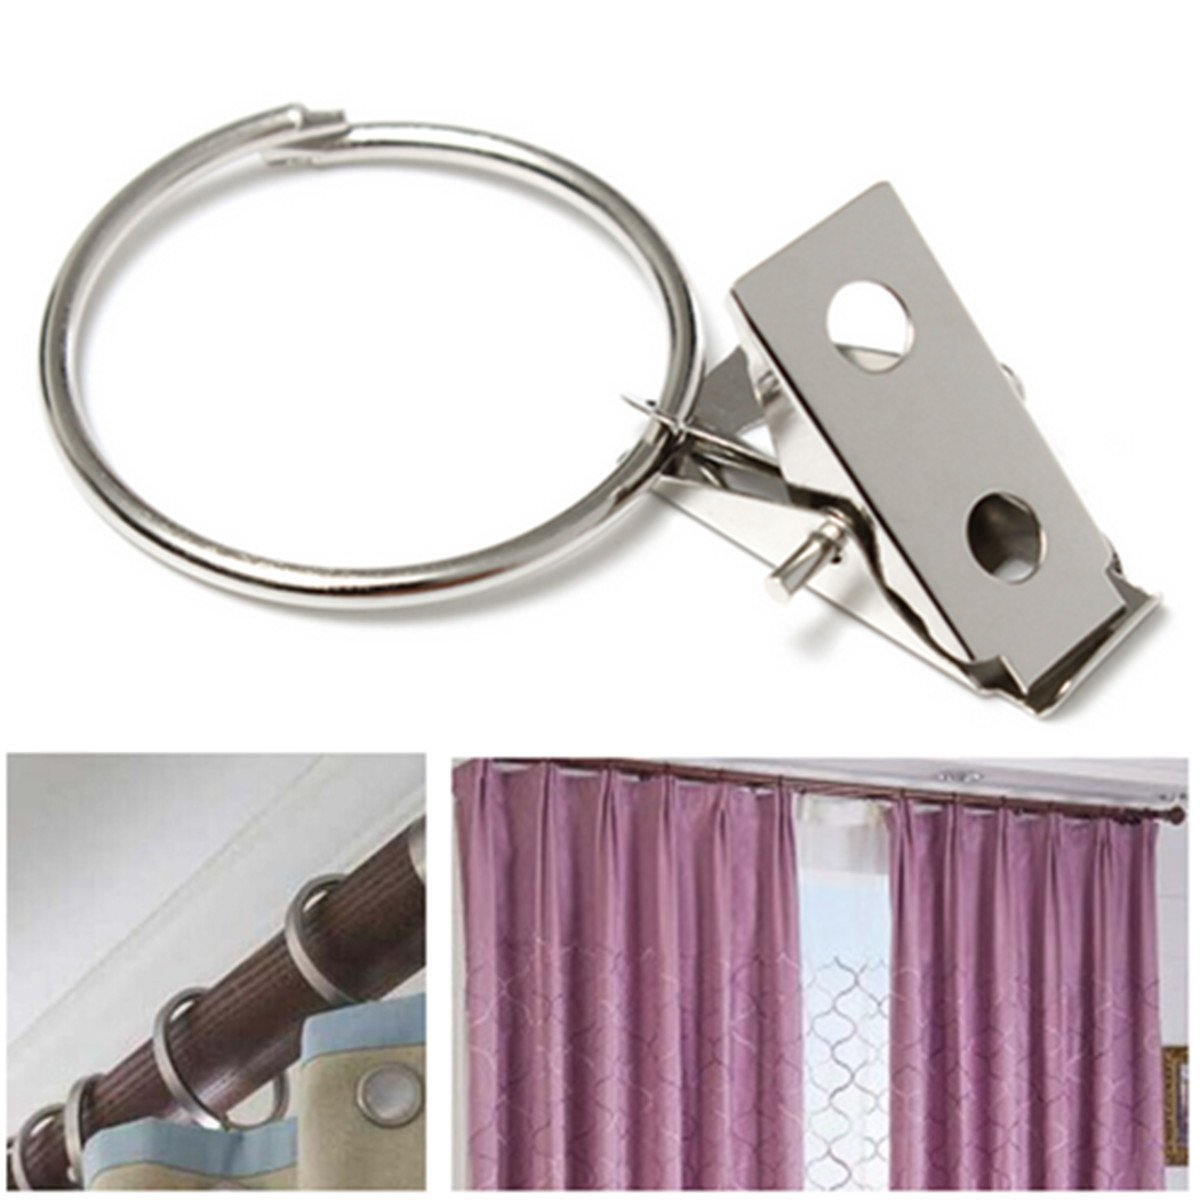 Practical 10pcs Metal Hooks Window Shower Curtain Rod Clip Drapery Clamp Rings  Curtain Accessories  Curtain Rod Rings